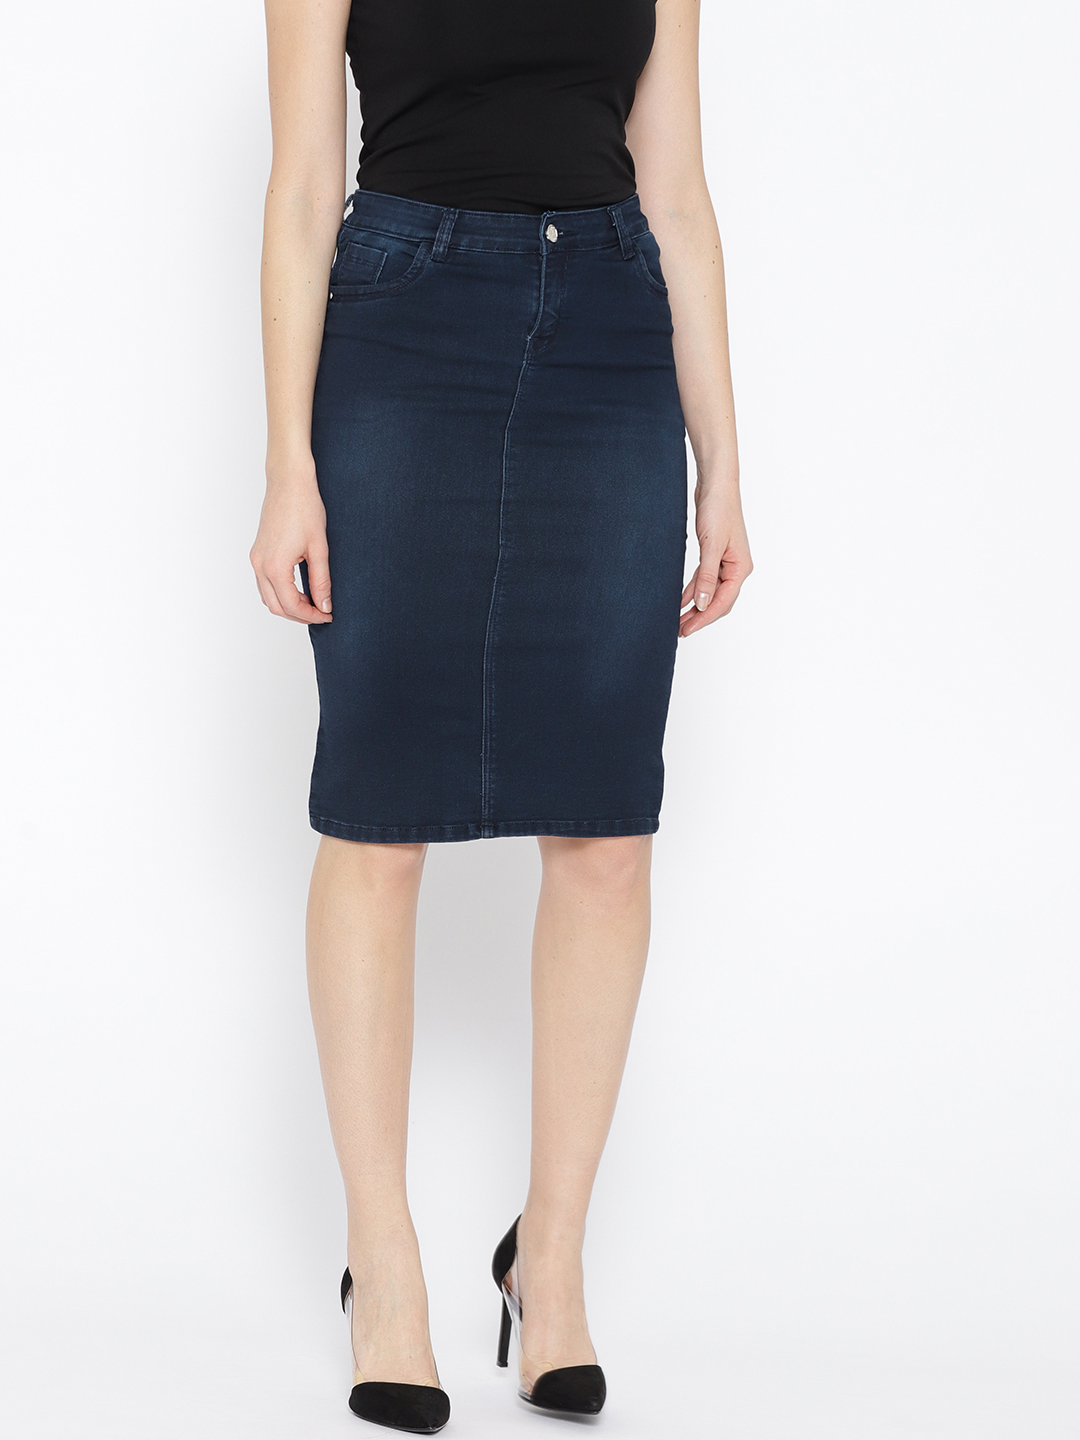 Purple Feather Women Navy Washed Denim Pencil Skirt Price in India